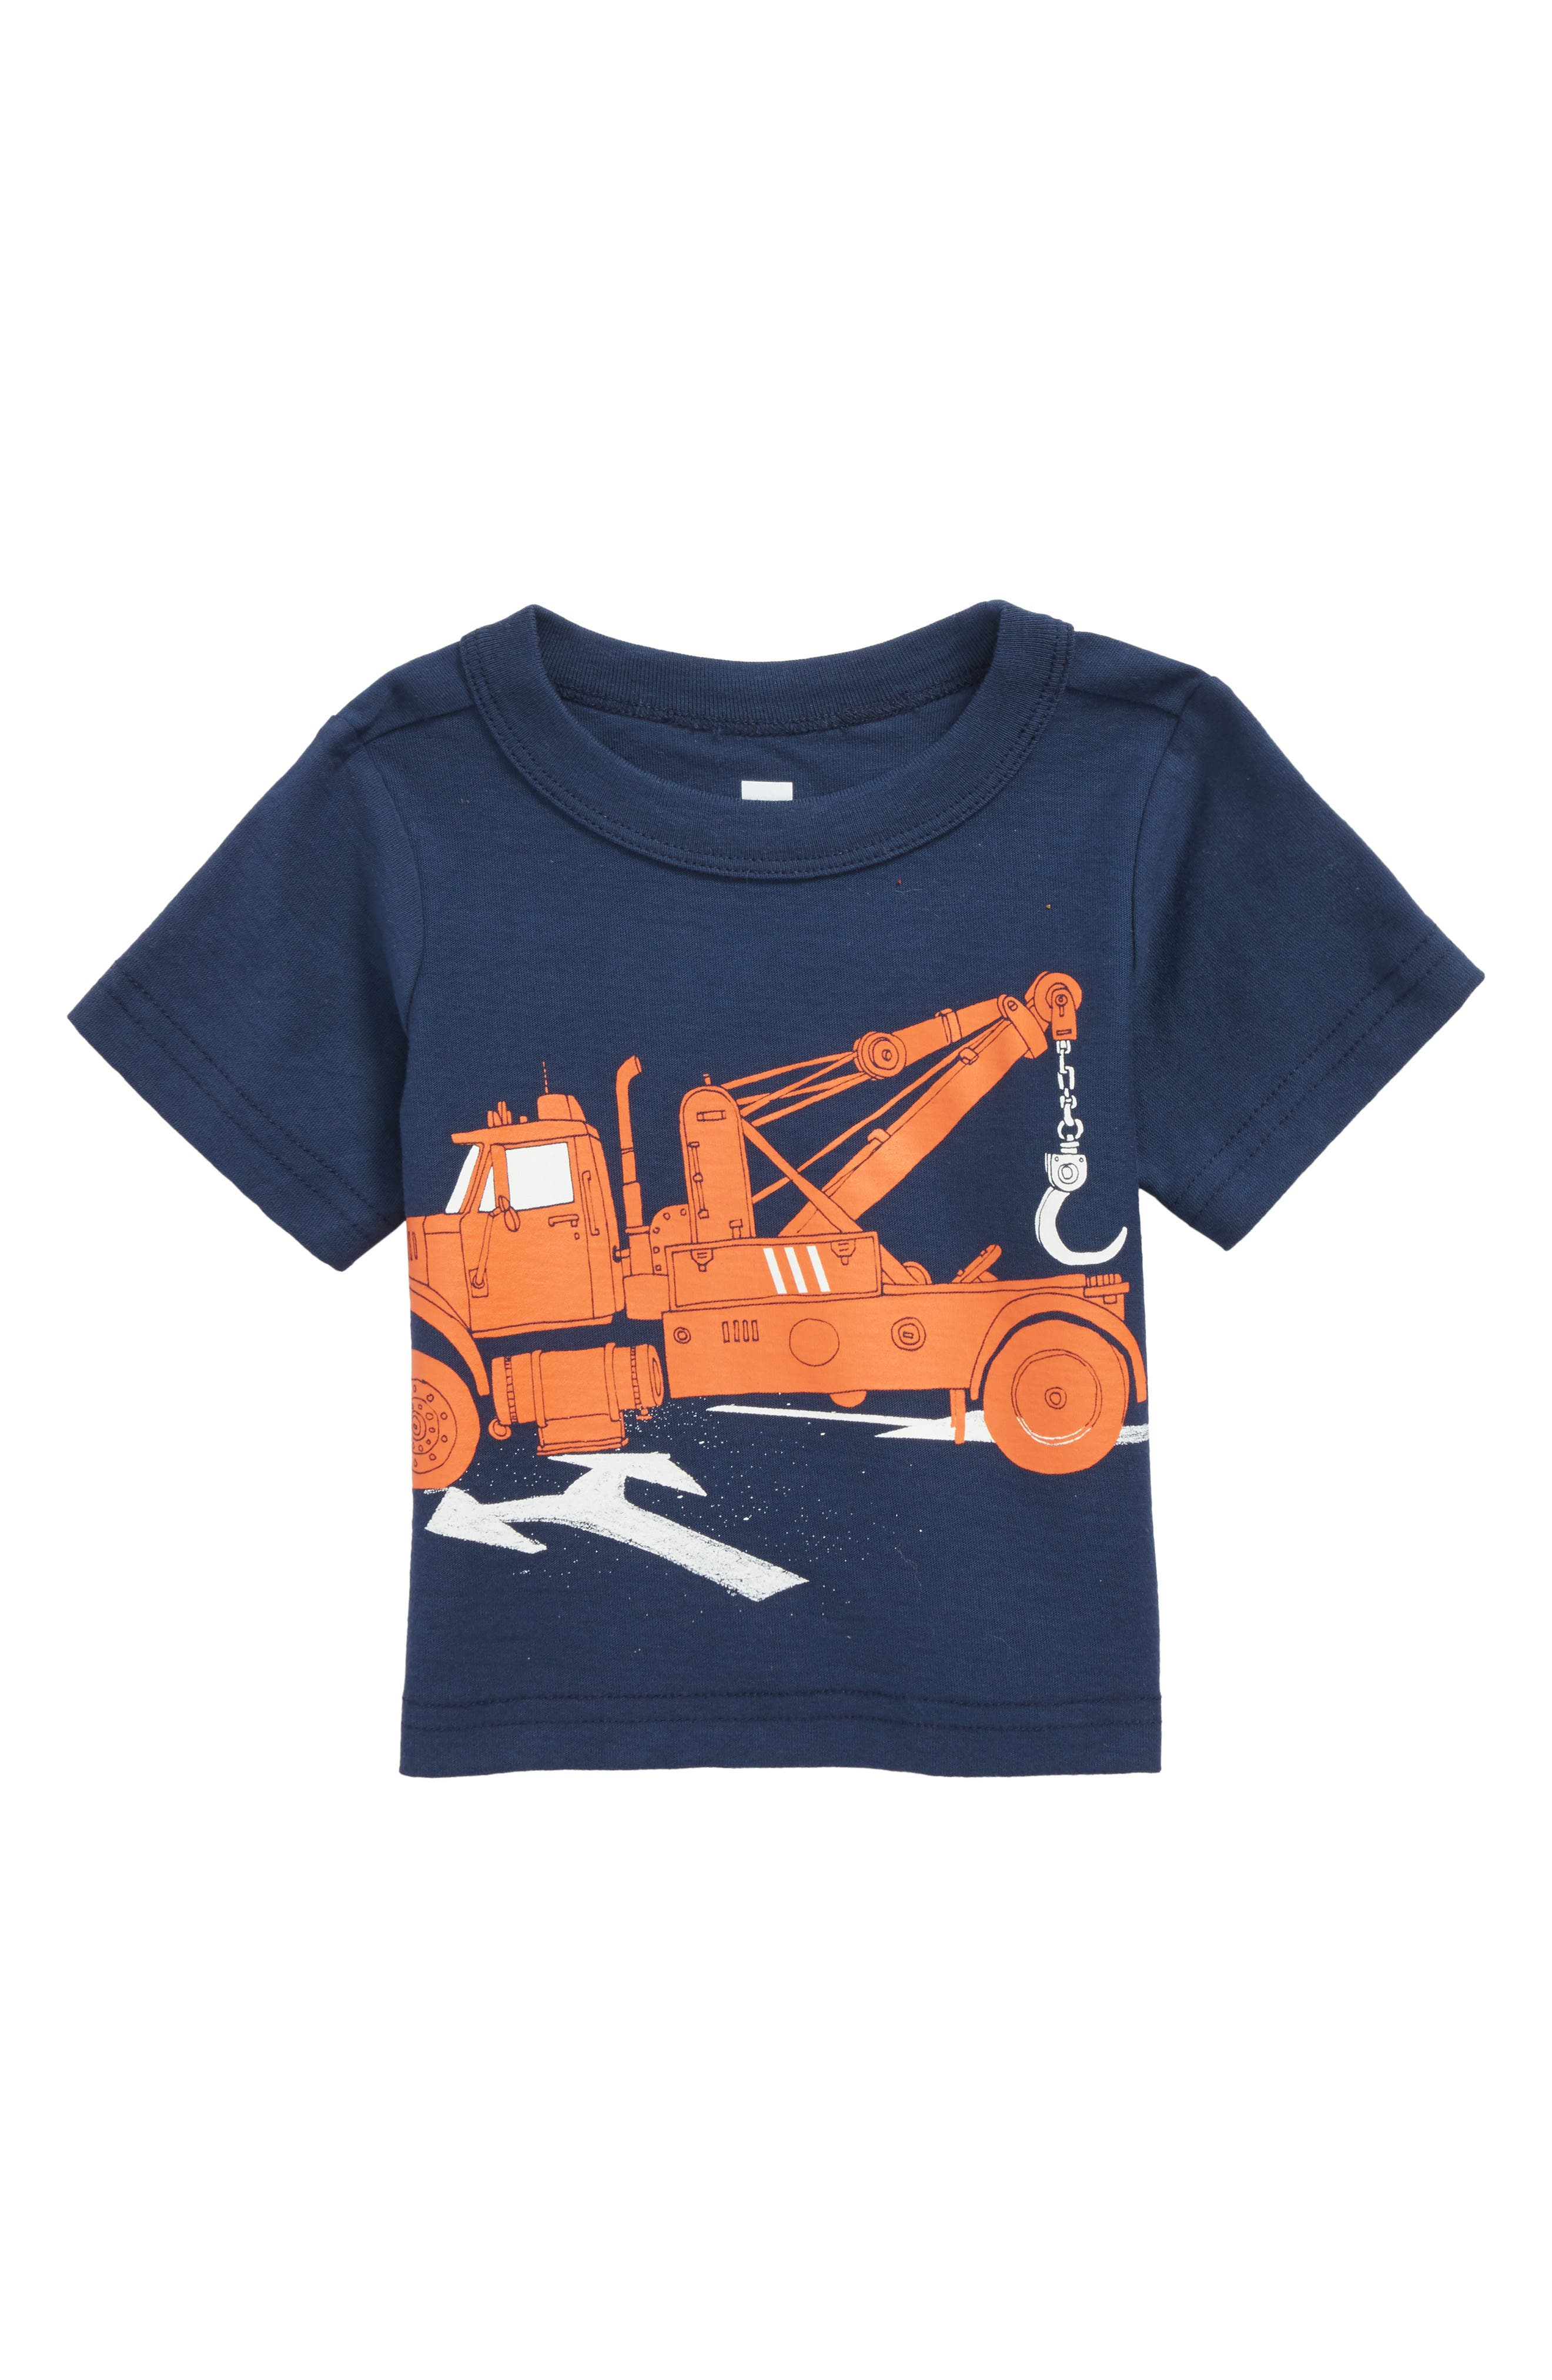 Tow Truck Graphic T-Shirt,                             Main thumbnail 1, color,                             Whale Blue